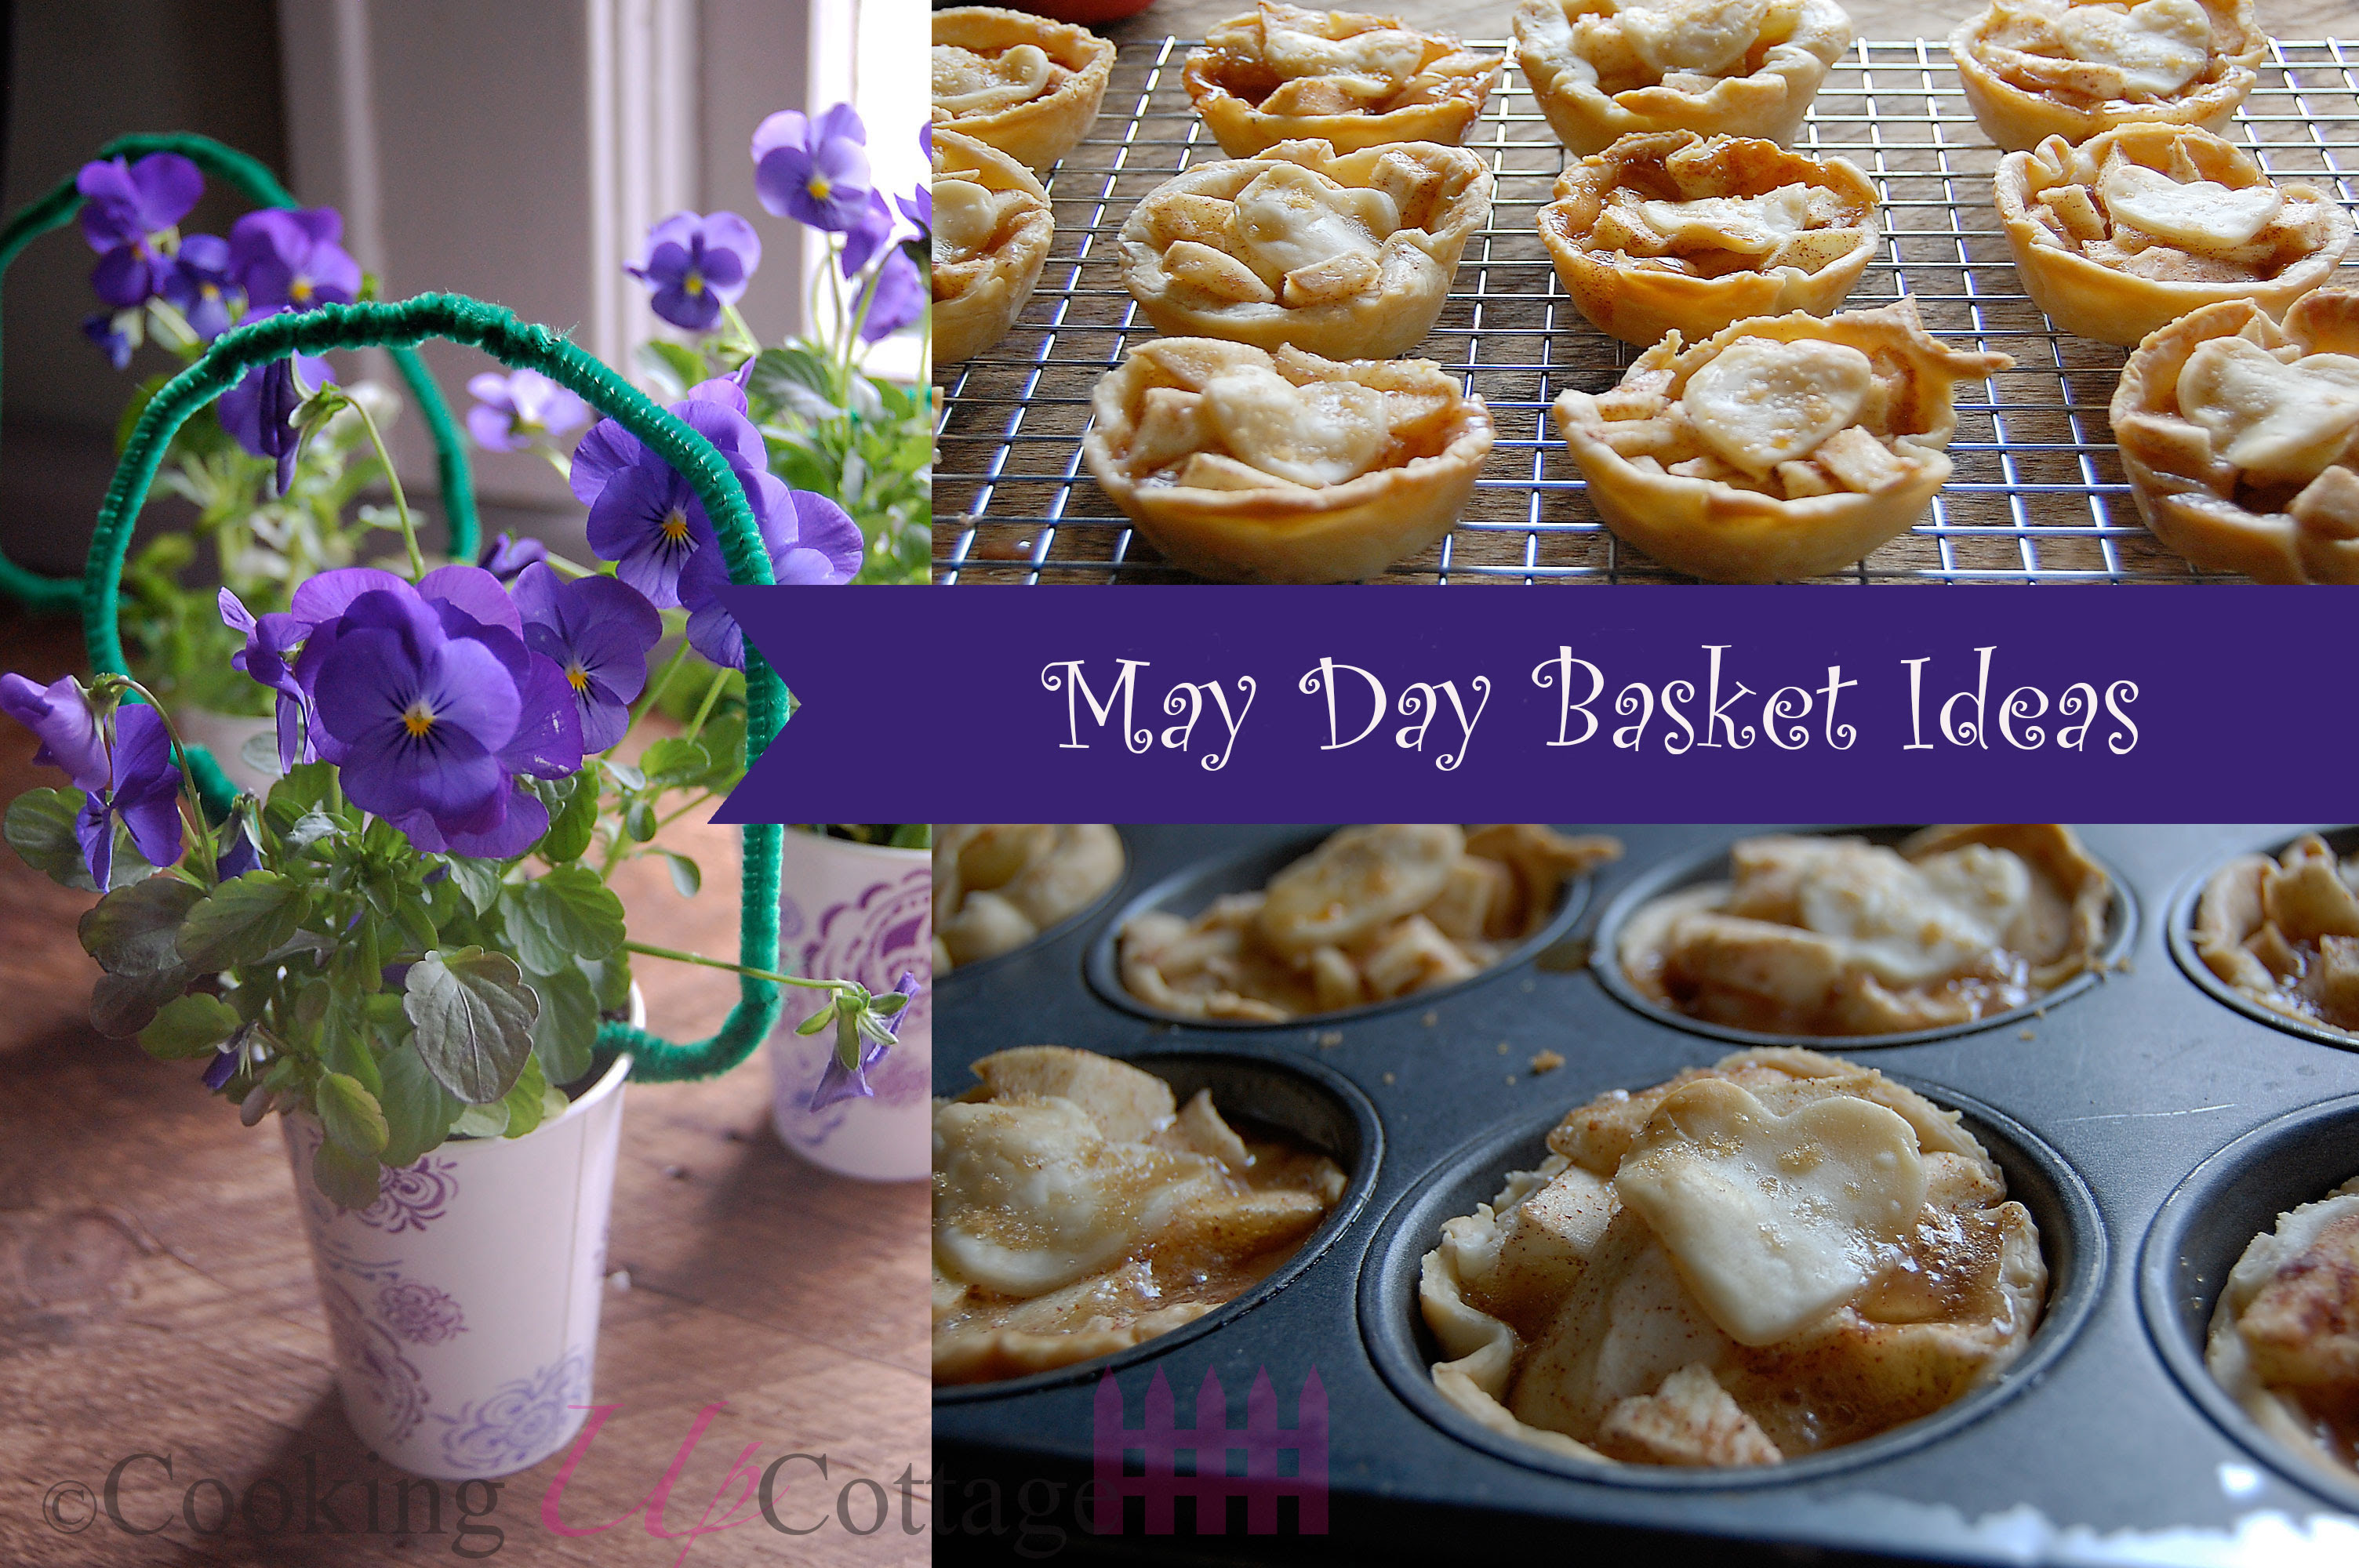 May Day Basket Ideas Cooking Up Cottage